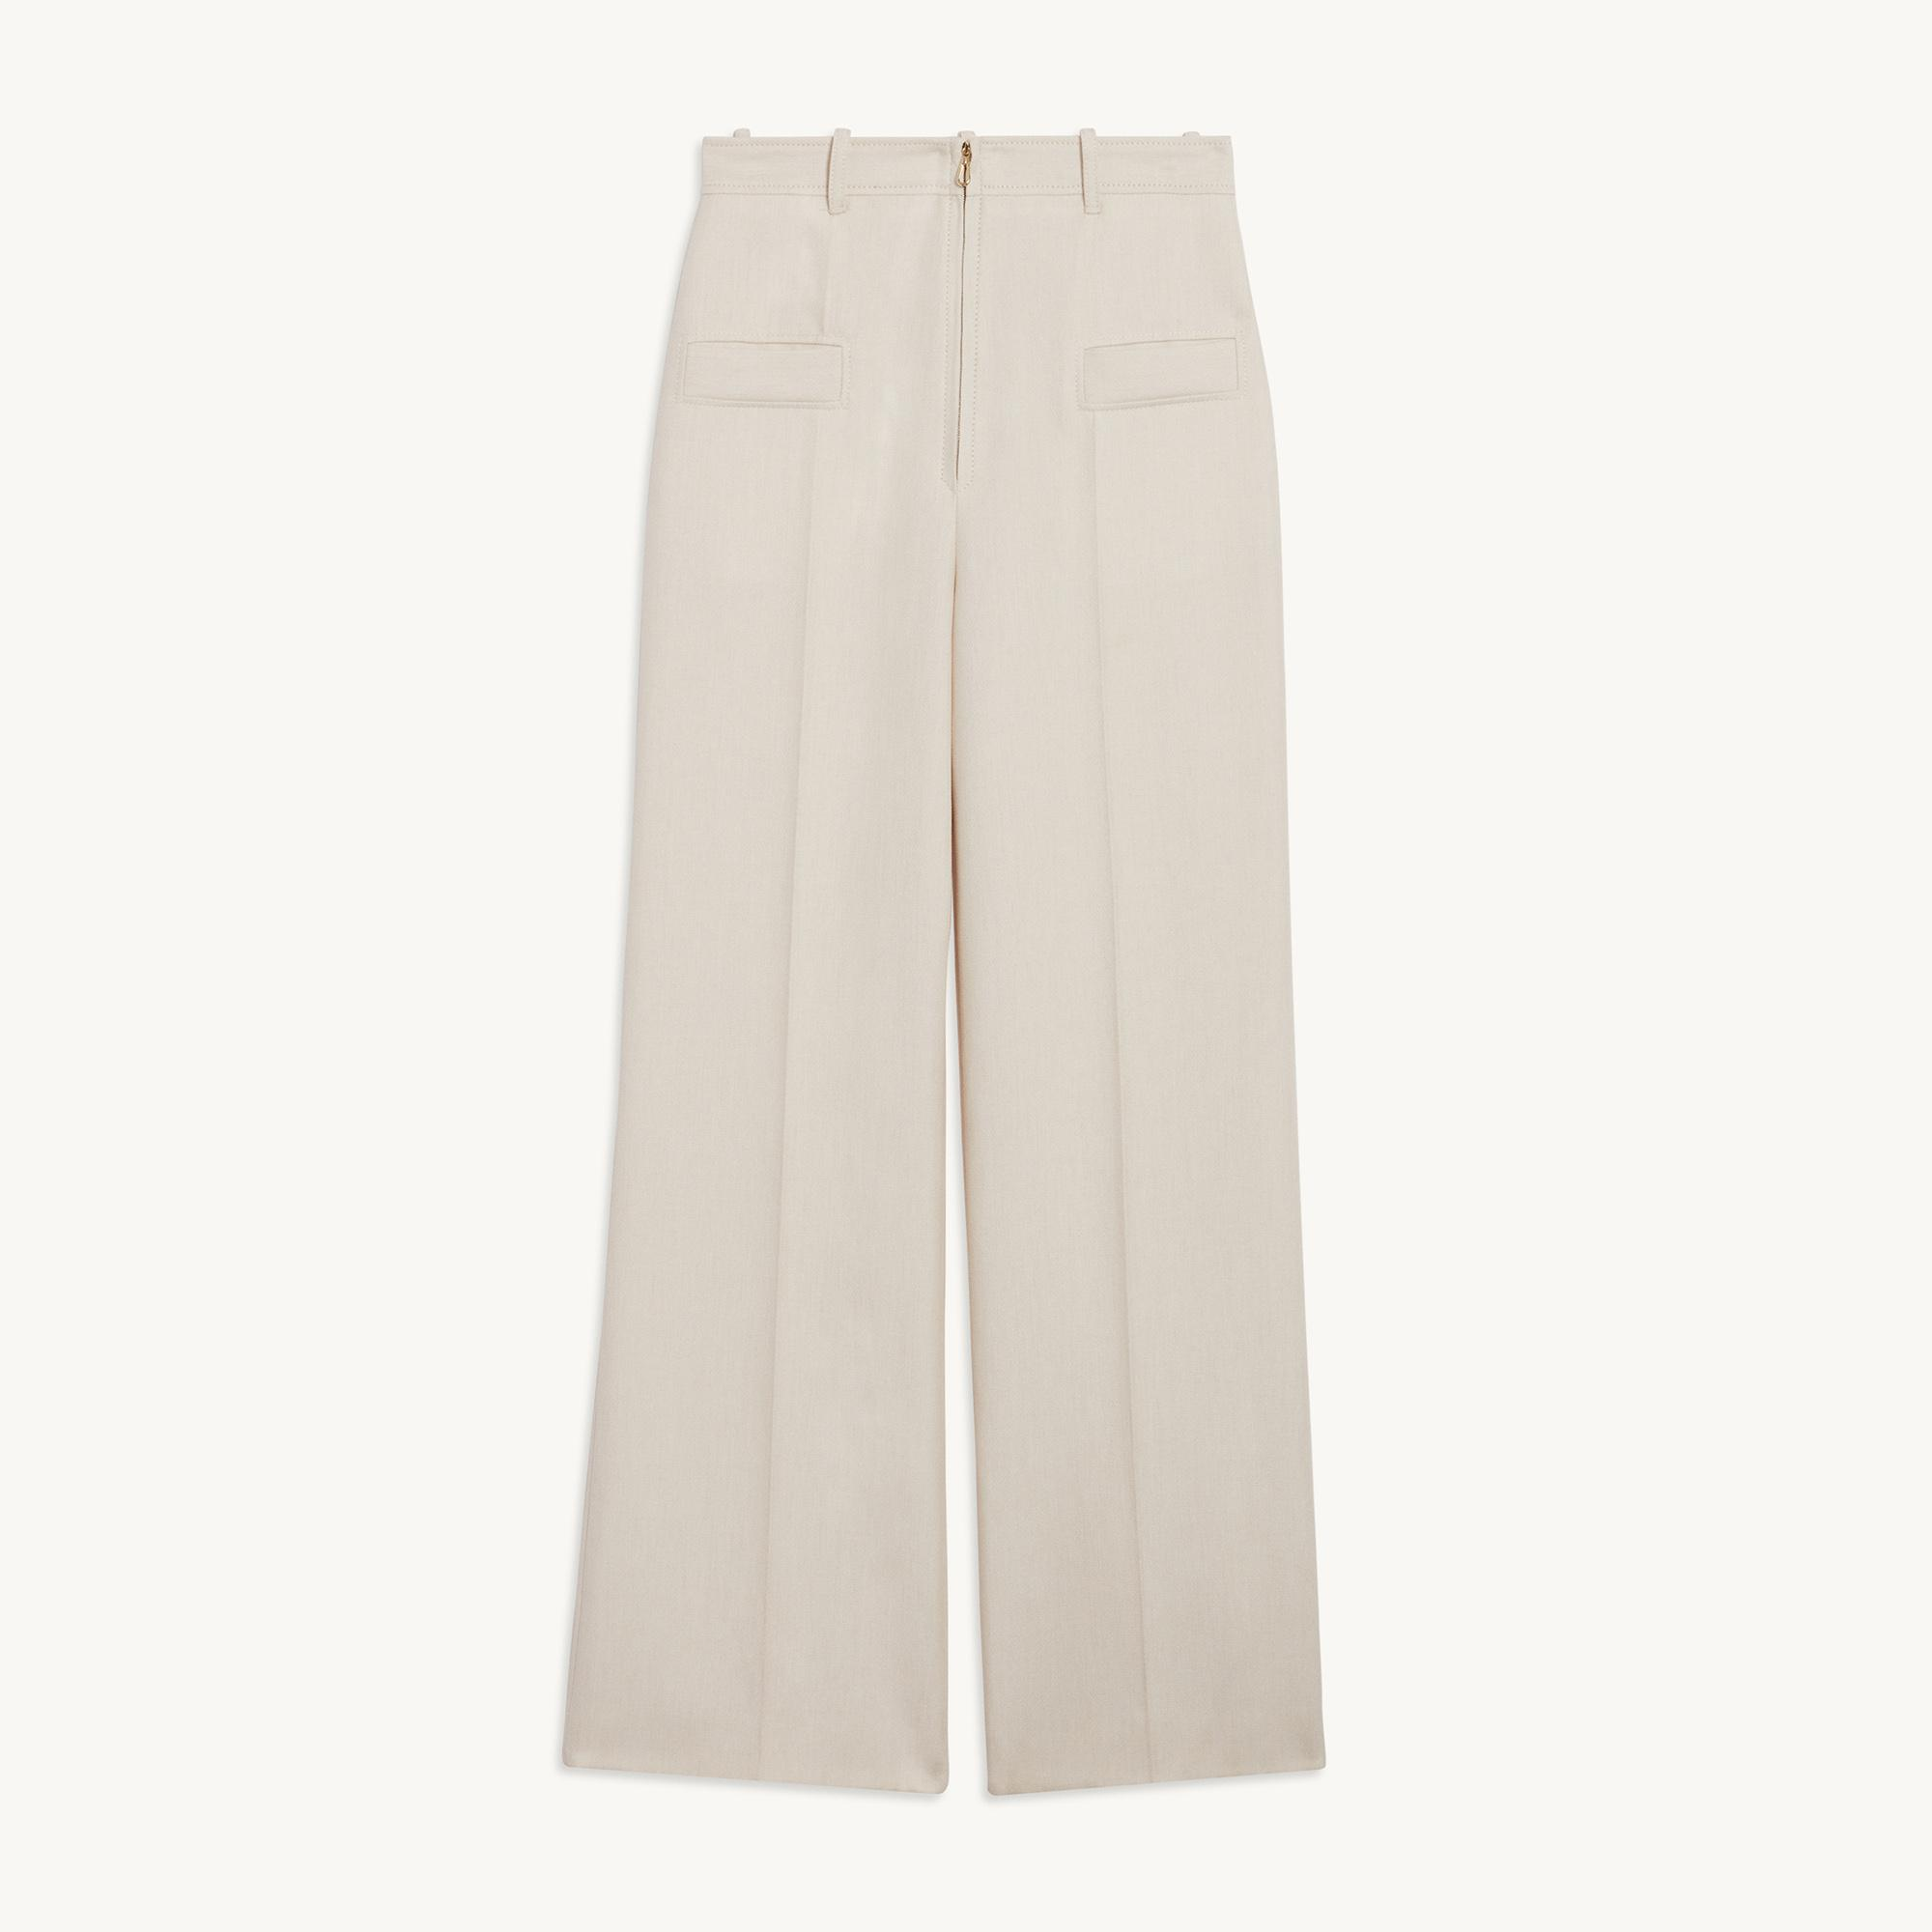 Pants with center front zip 5